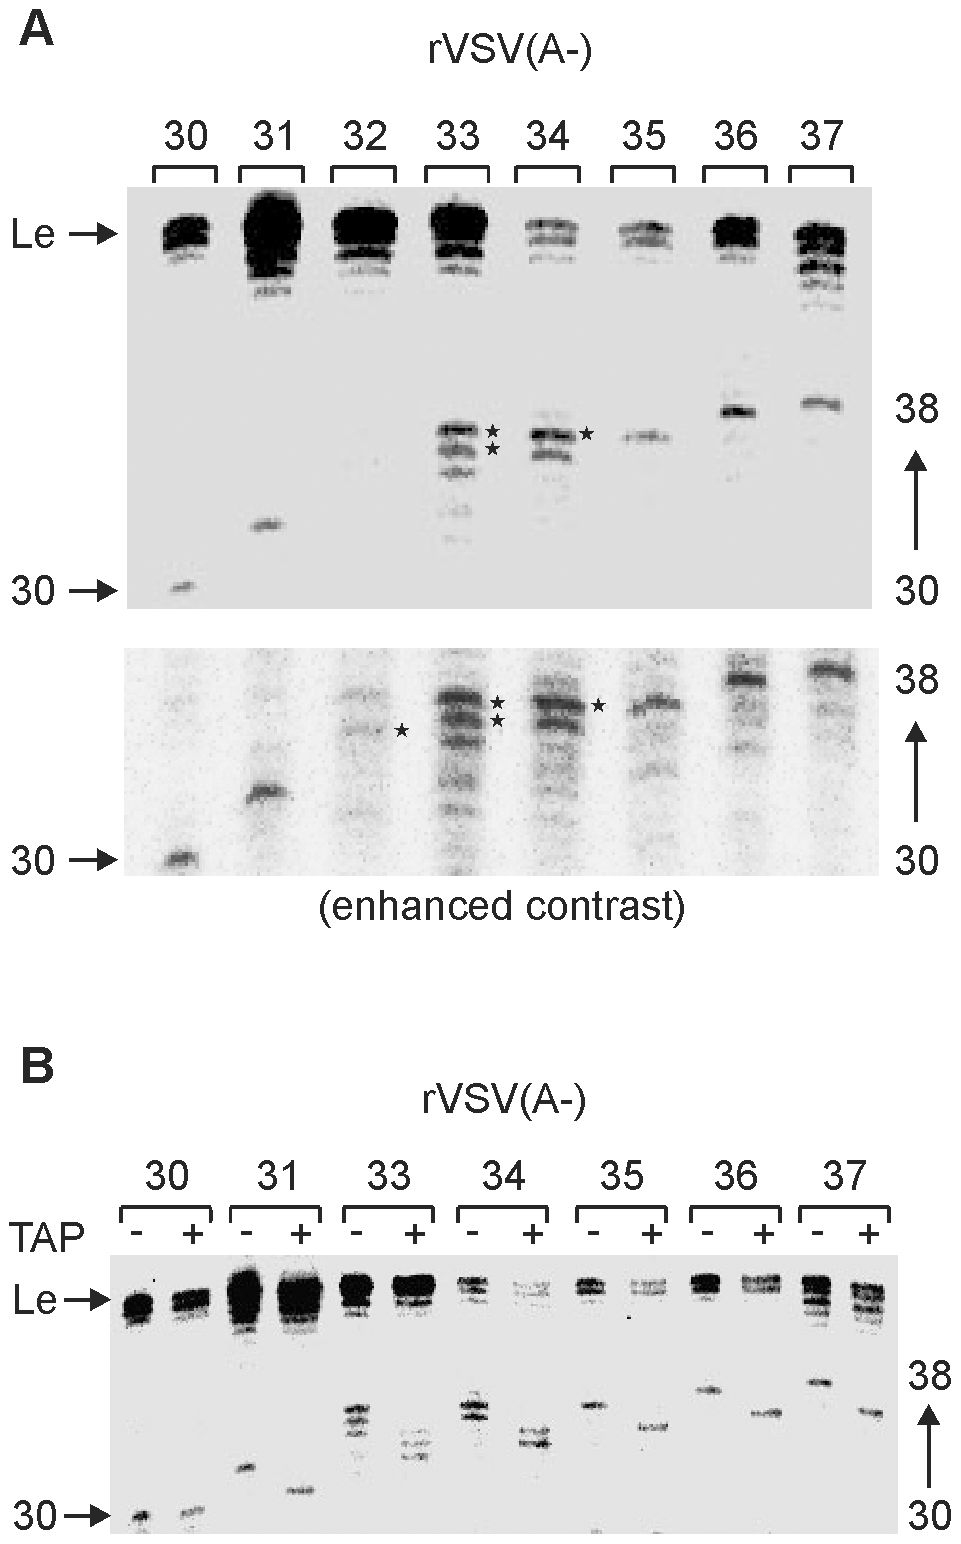 Determination to a single nucleotide the length at which VSV mRNA gets capped.